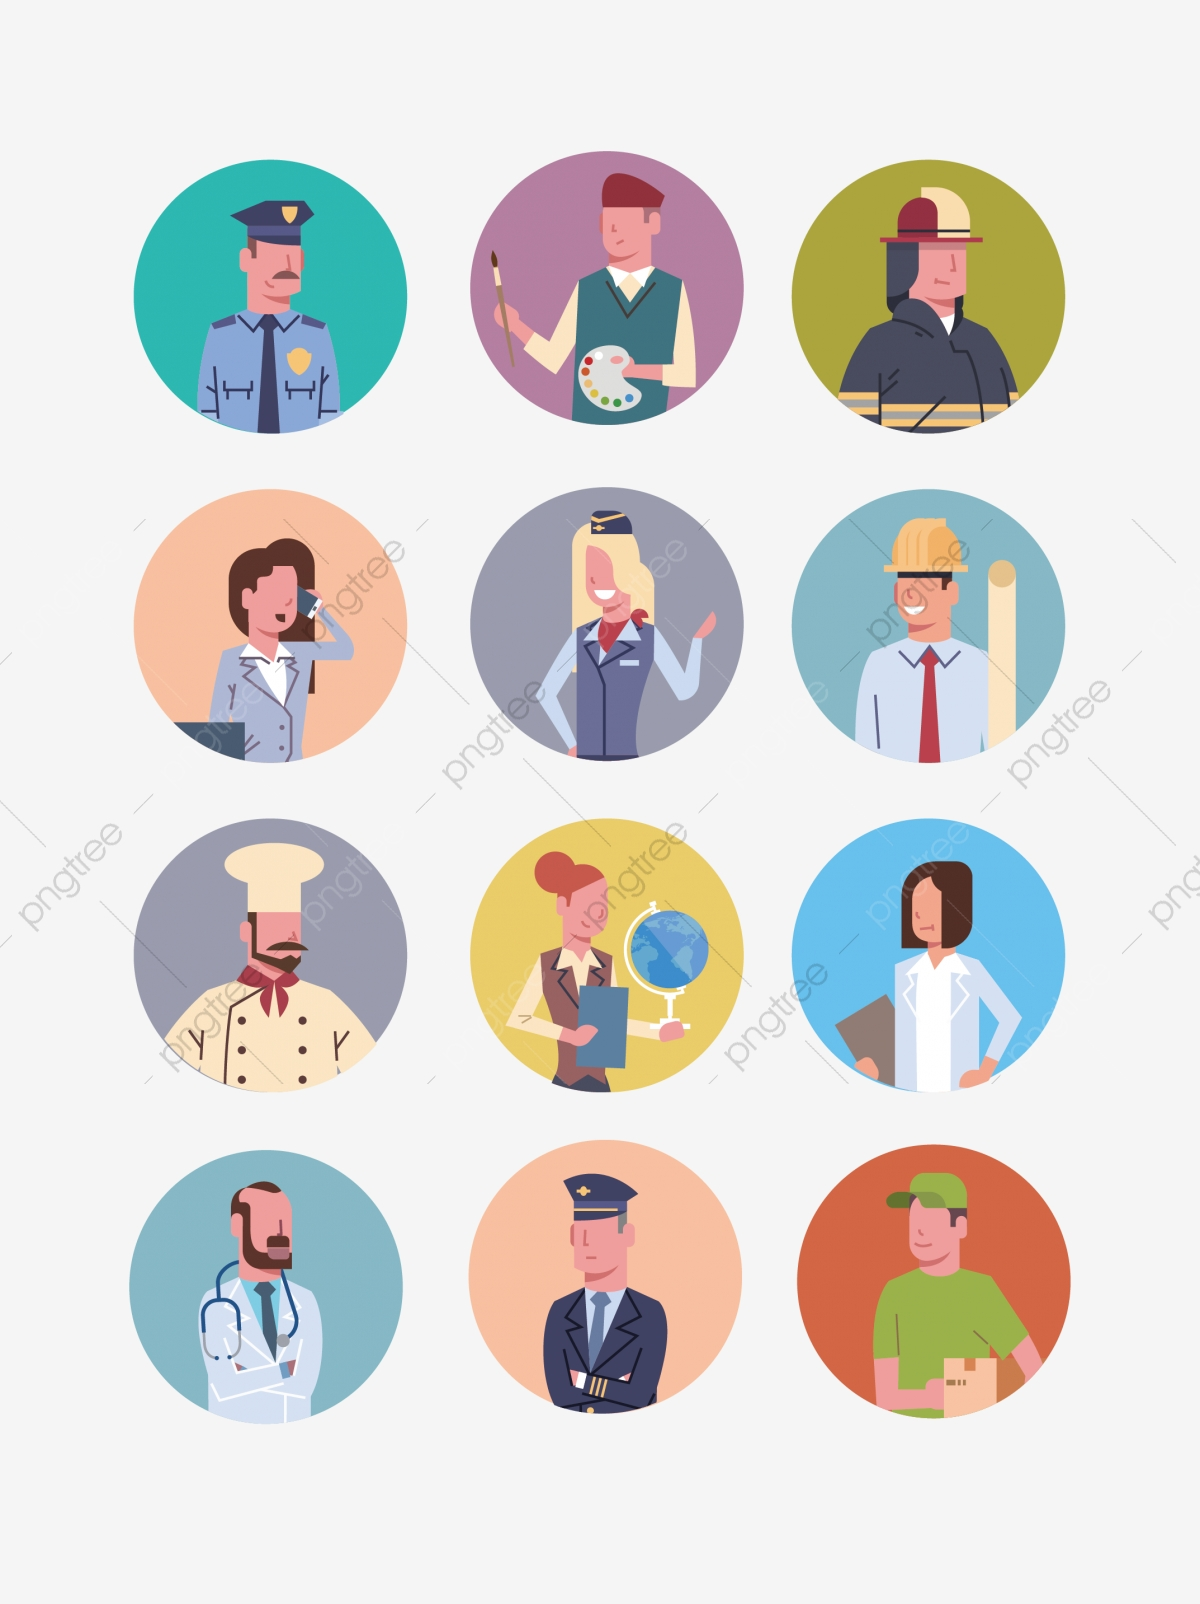 Ai Cartoon Professional Character Avatar Design Material Icon Ui Round Career Cartoon Png And Vector With Transparent Background For Free Download